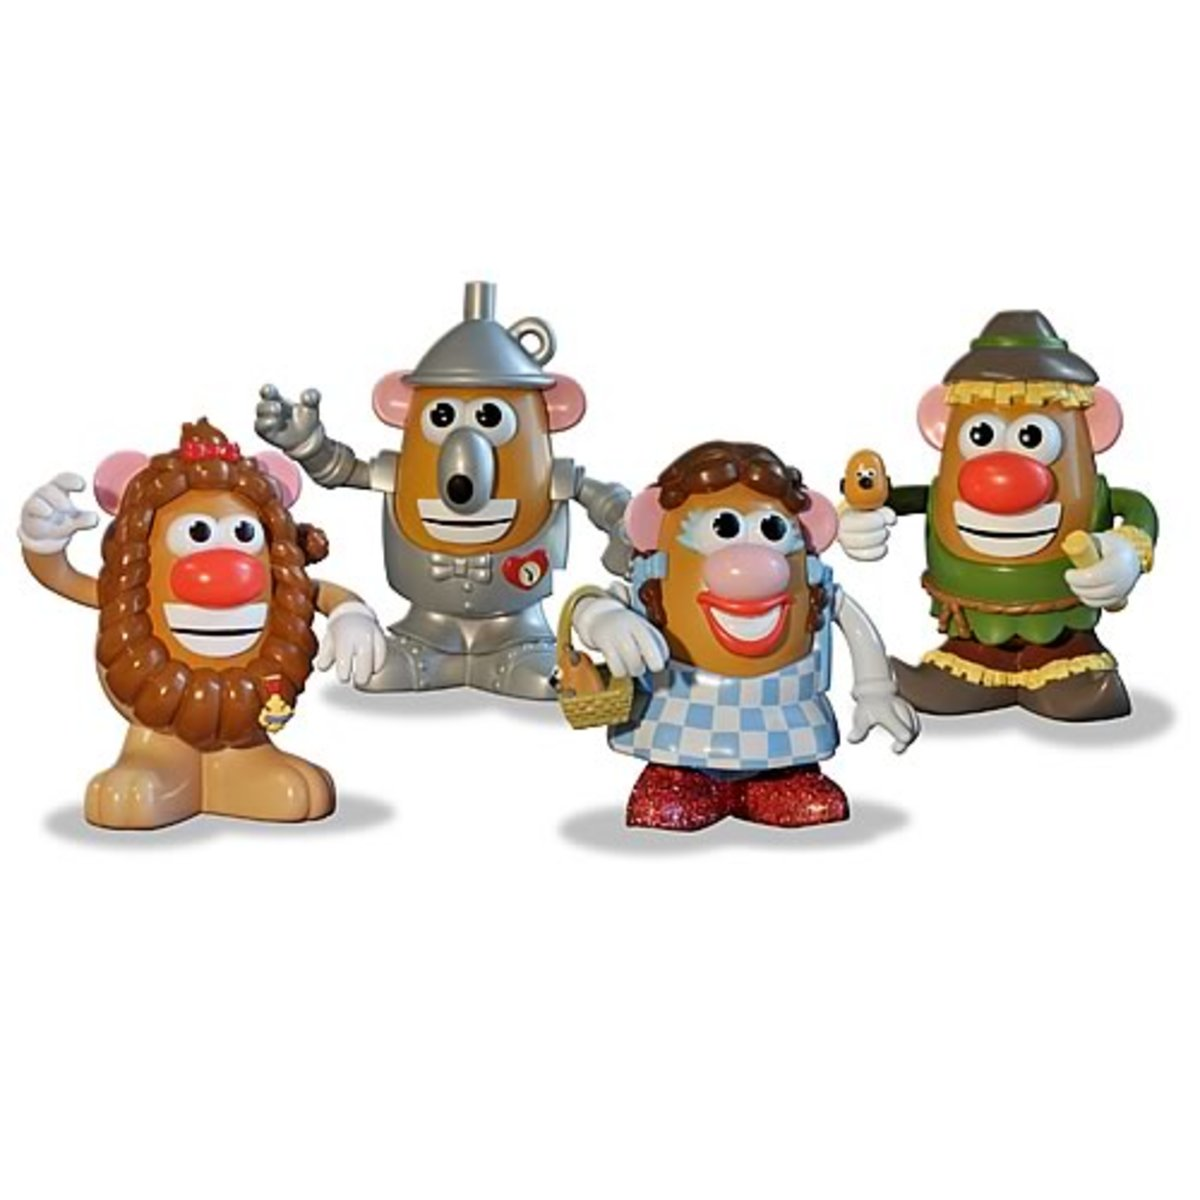 The Wizard of Oz Dorothy And Friends Mr. Potato Head